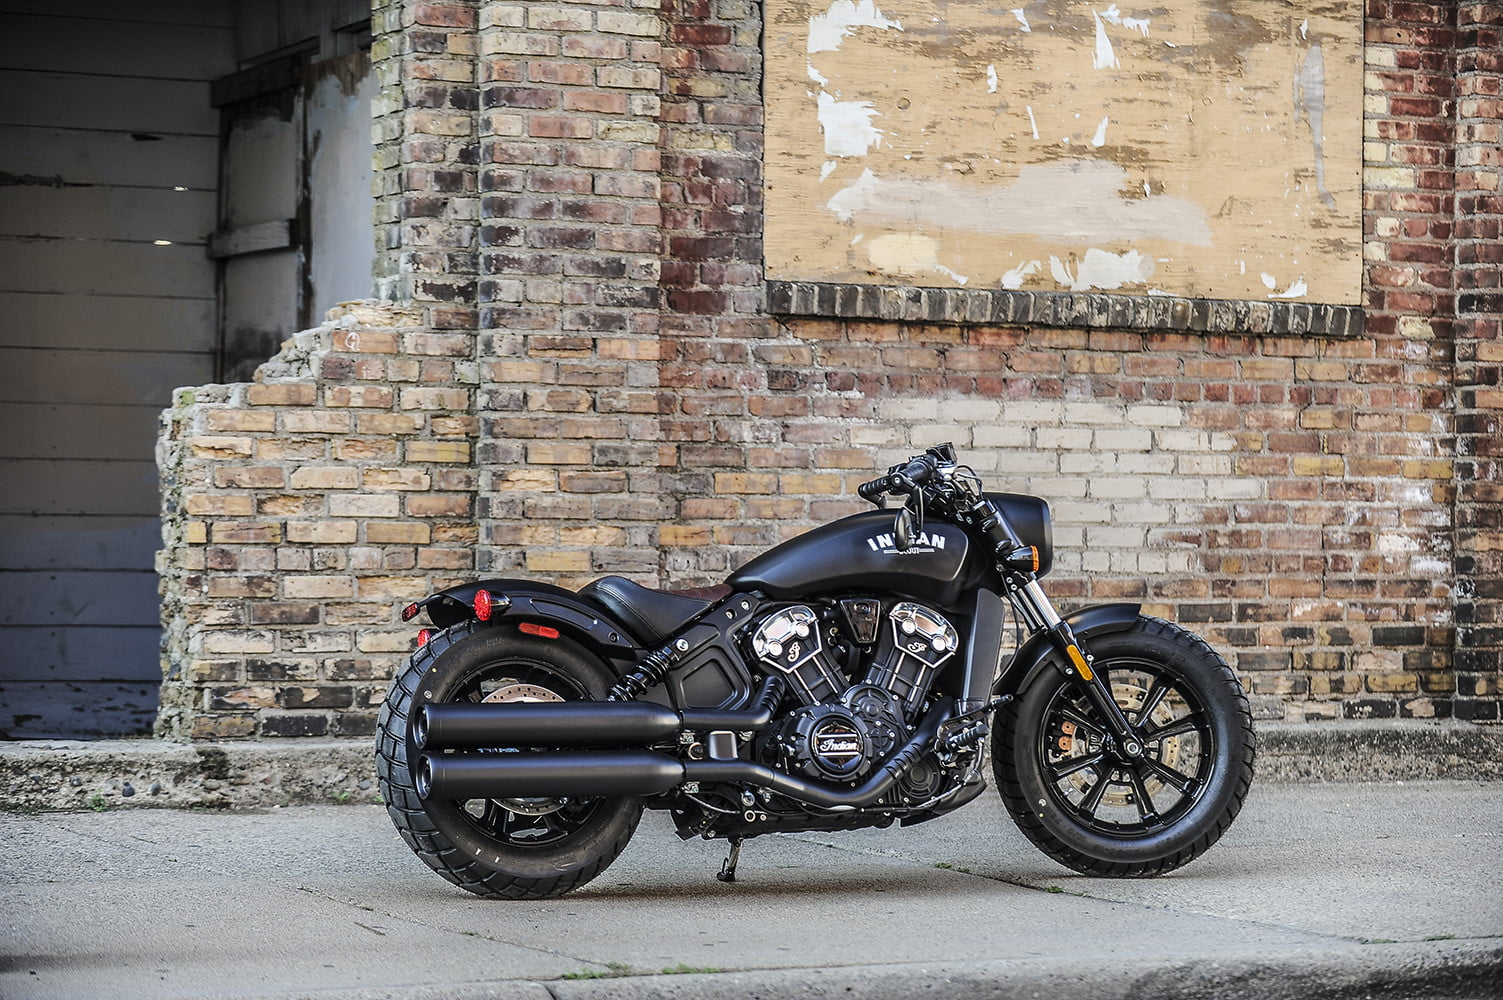 2018 Indian Motorcycles | Full Lineup Specs, Prices